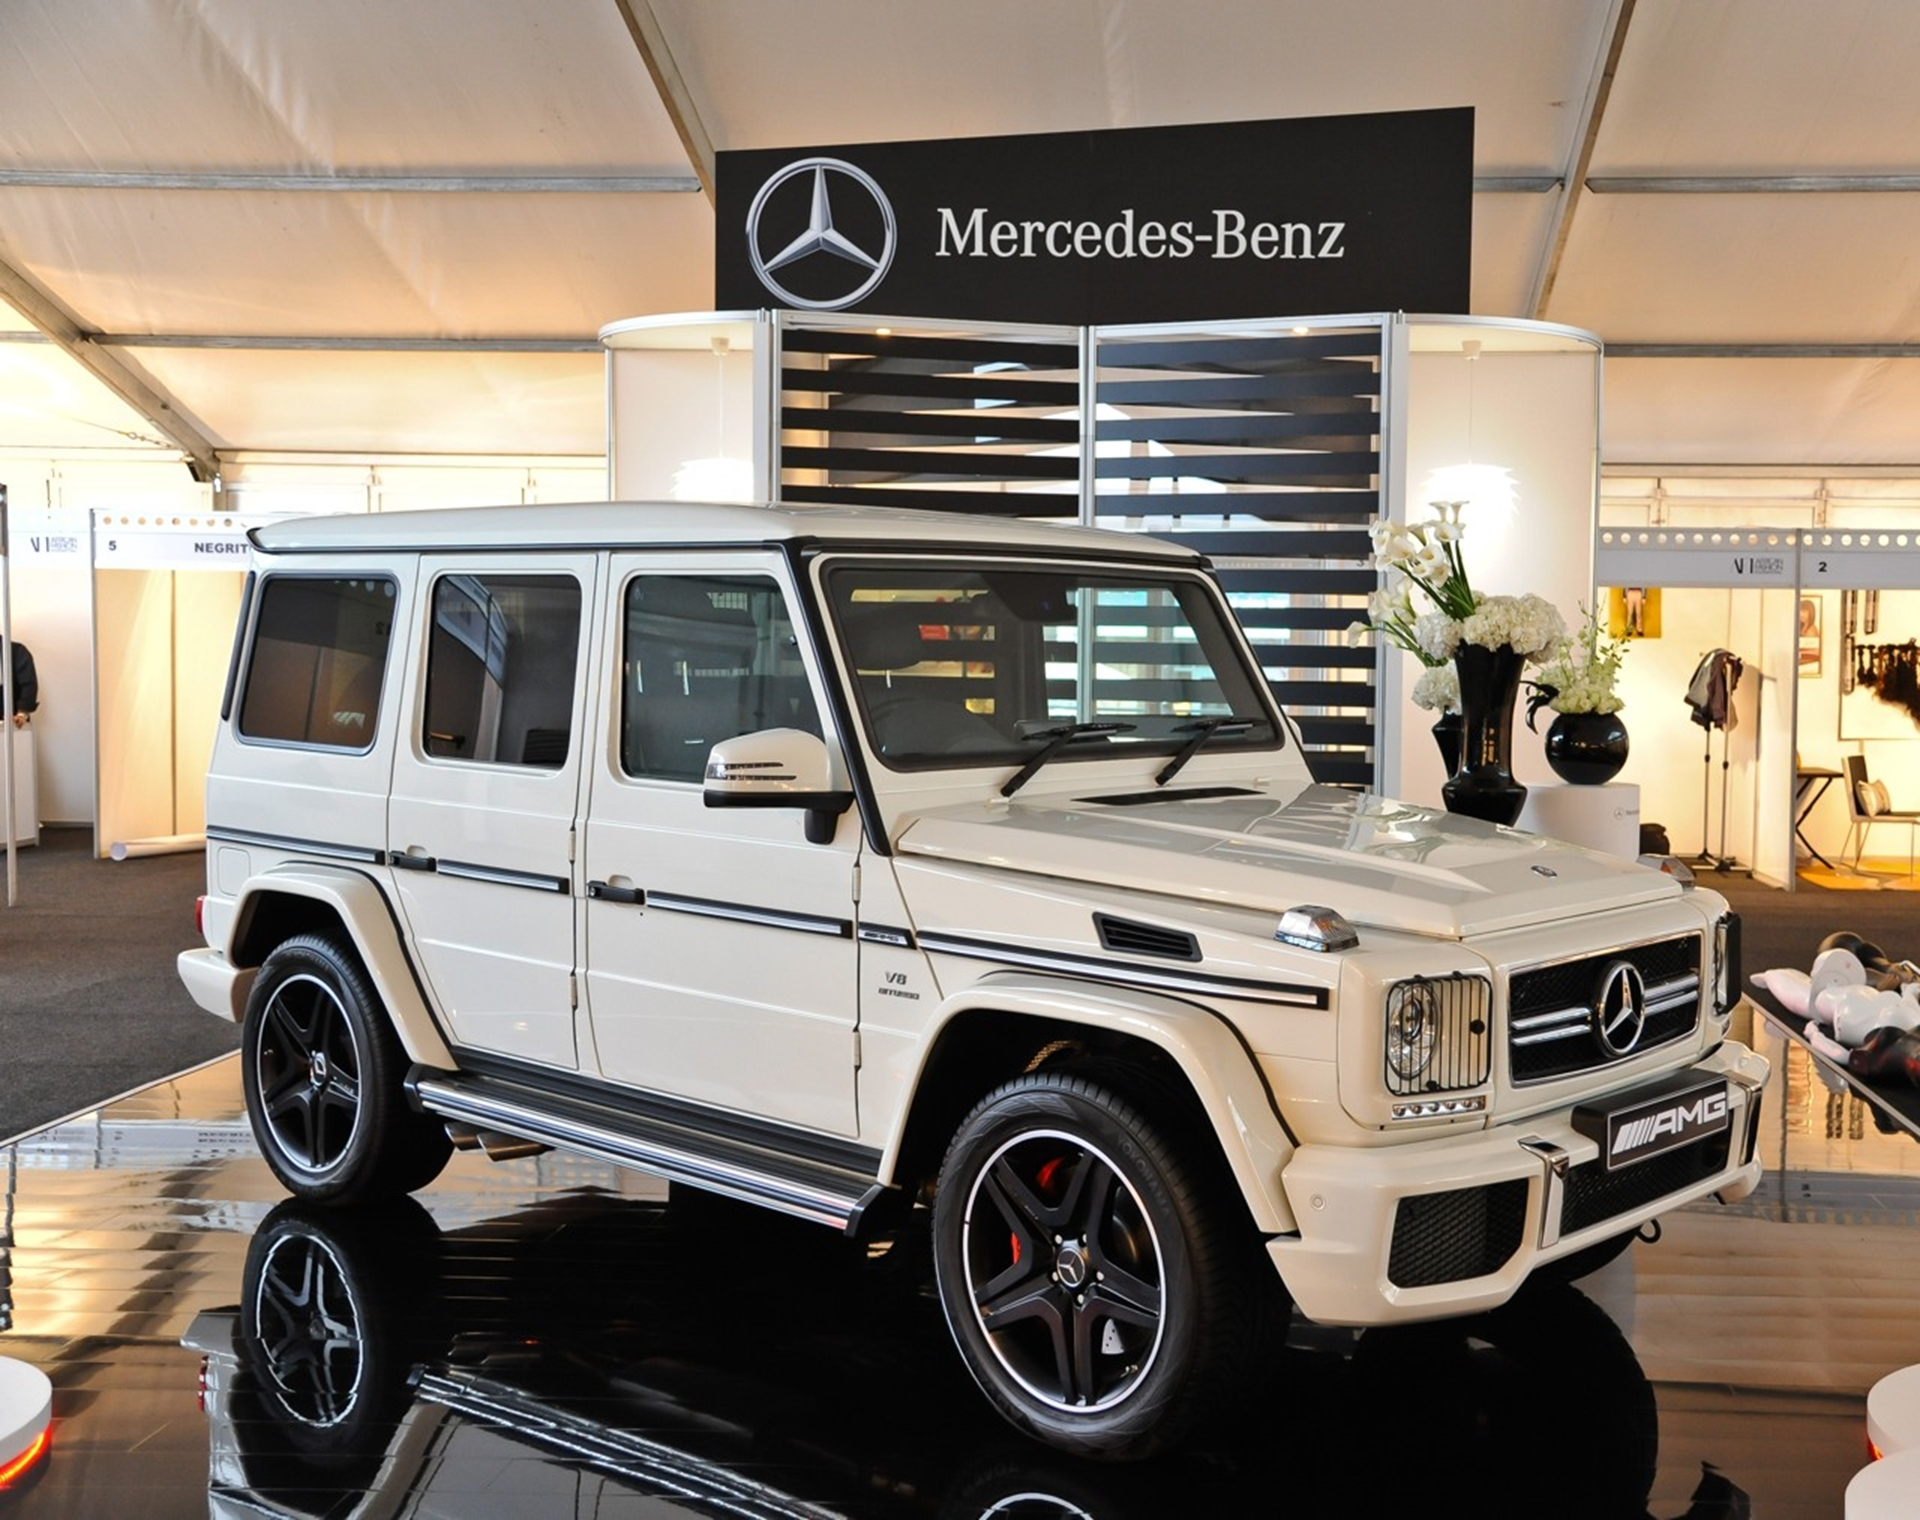 The ultimate in design and performance – the G 63 AMG